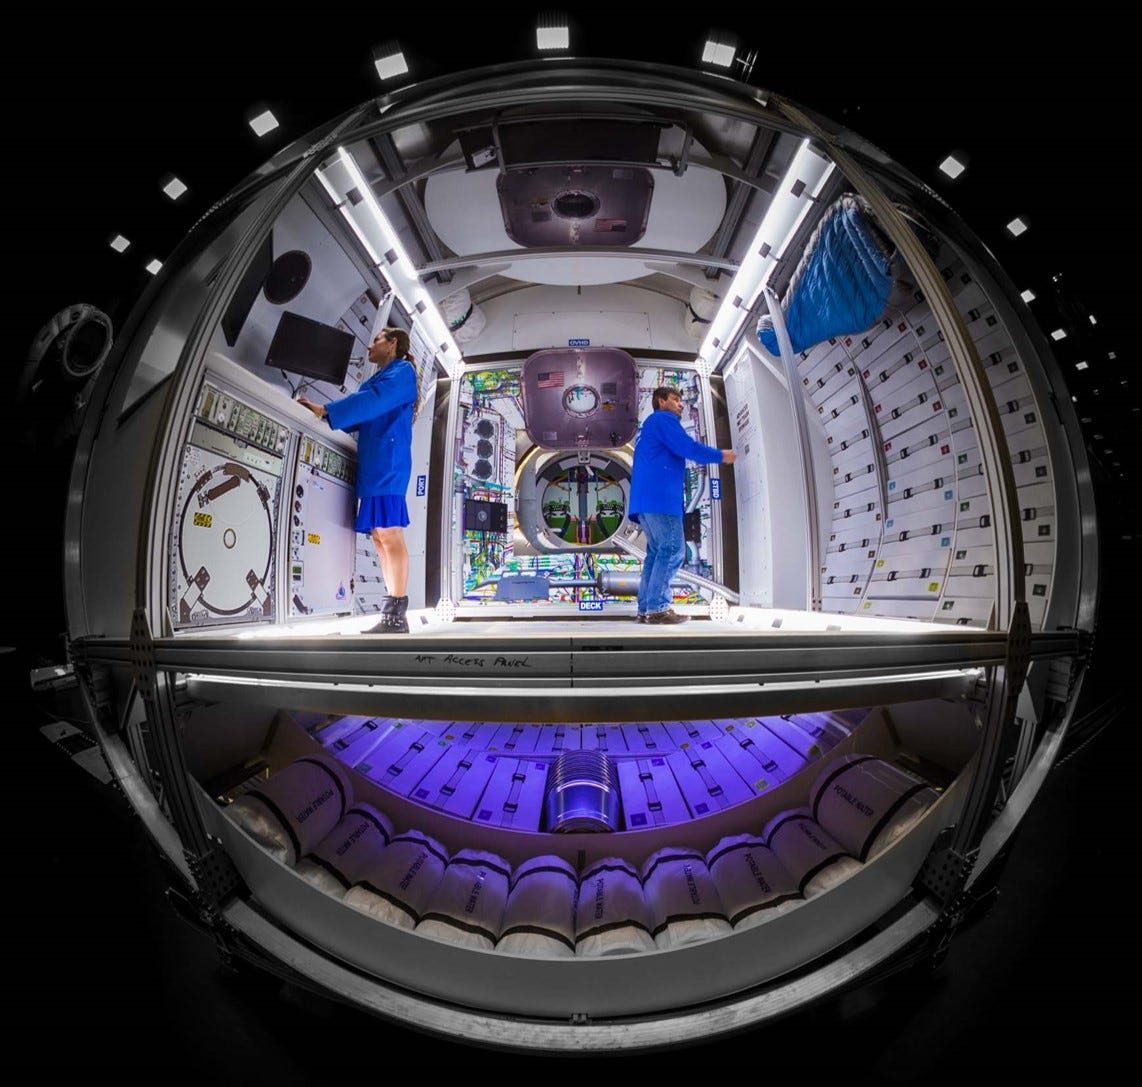 914bdf92-5bc1-4fd3-9c08-c7f660f10466-Lockheed1 Lockheed Martin offers glimpse into its lunar habitat modules | Poll